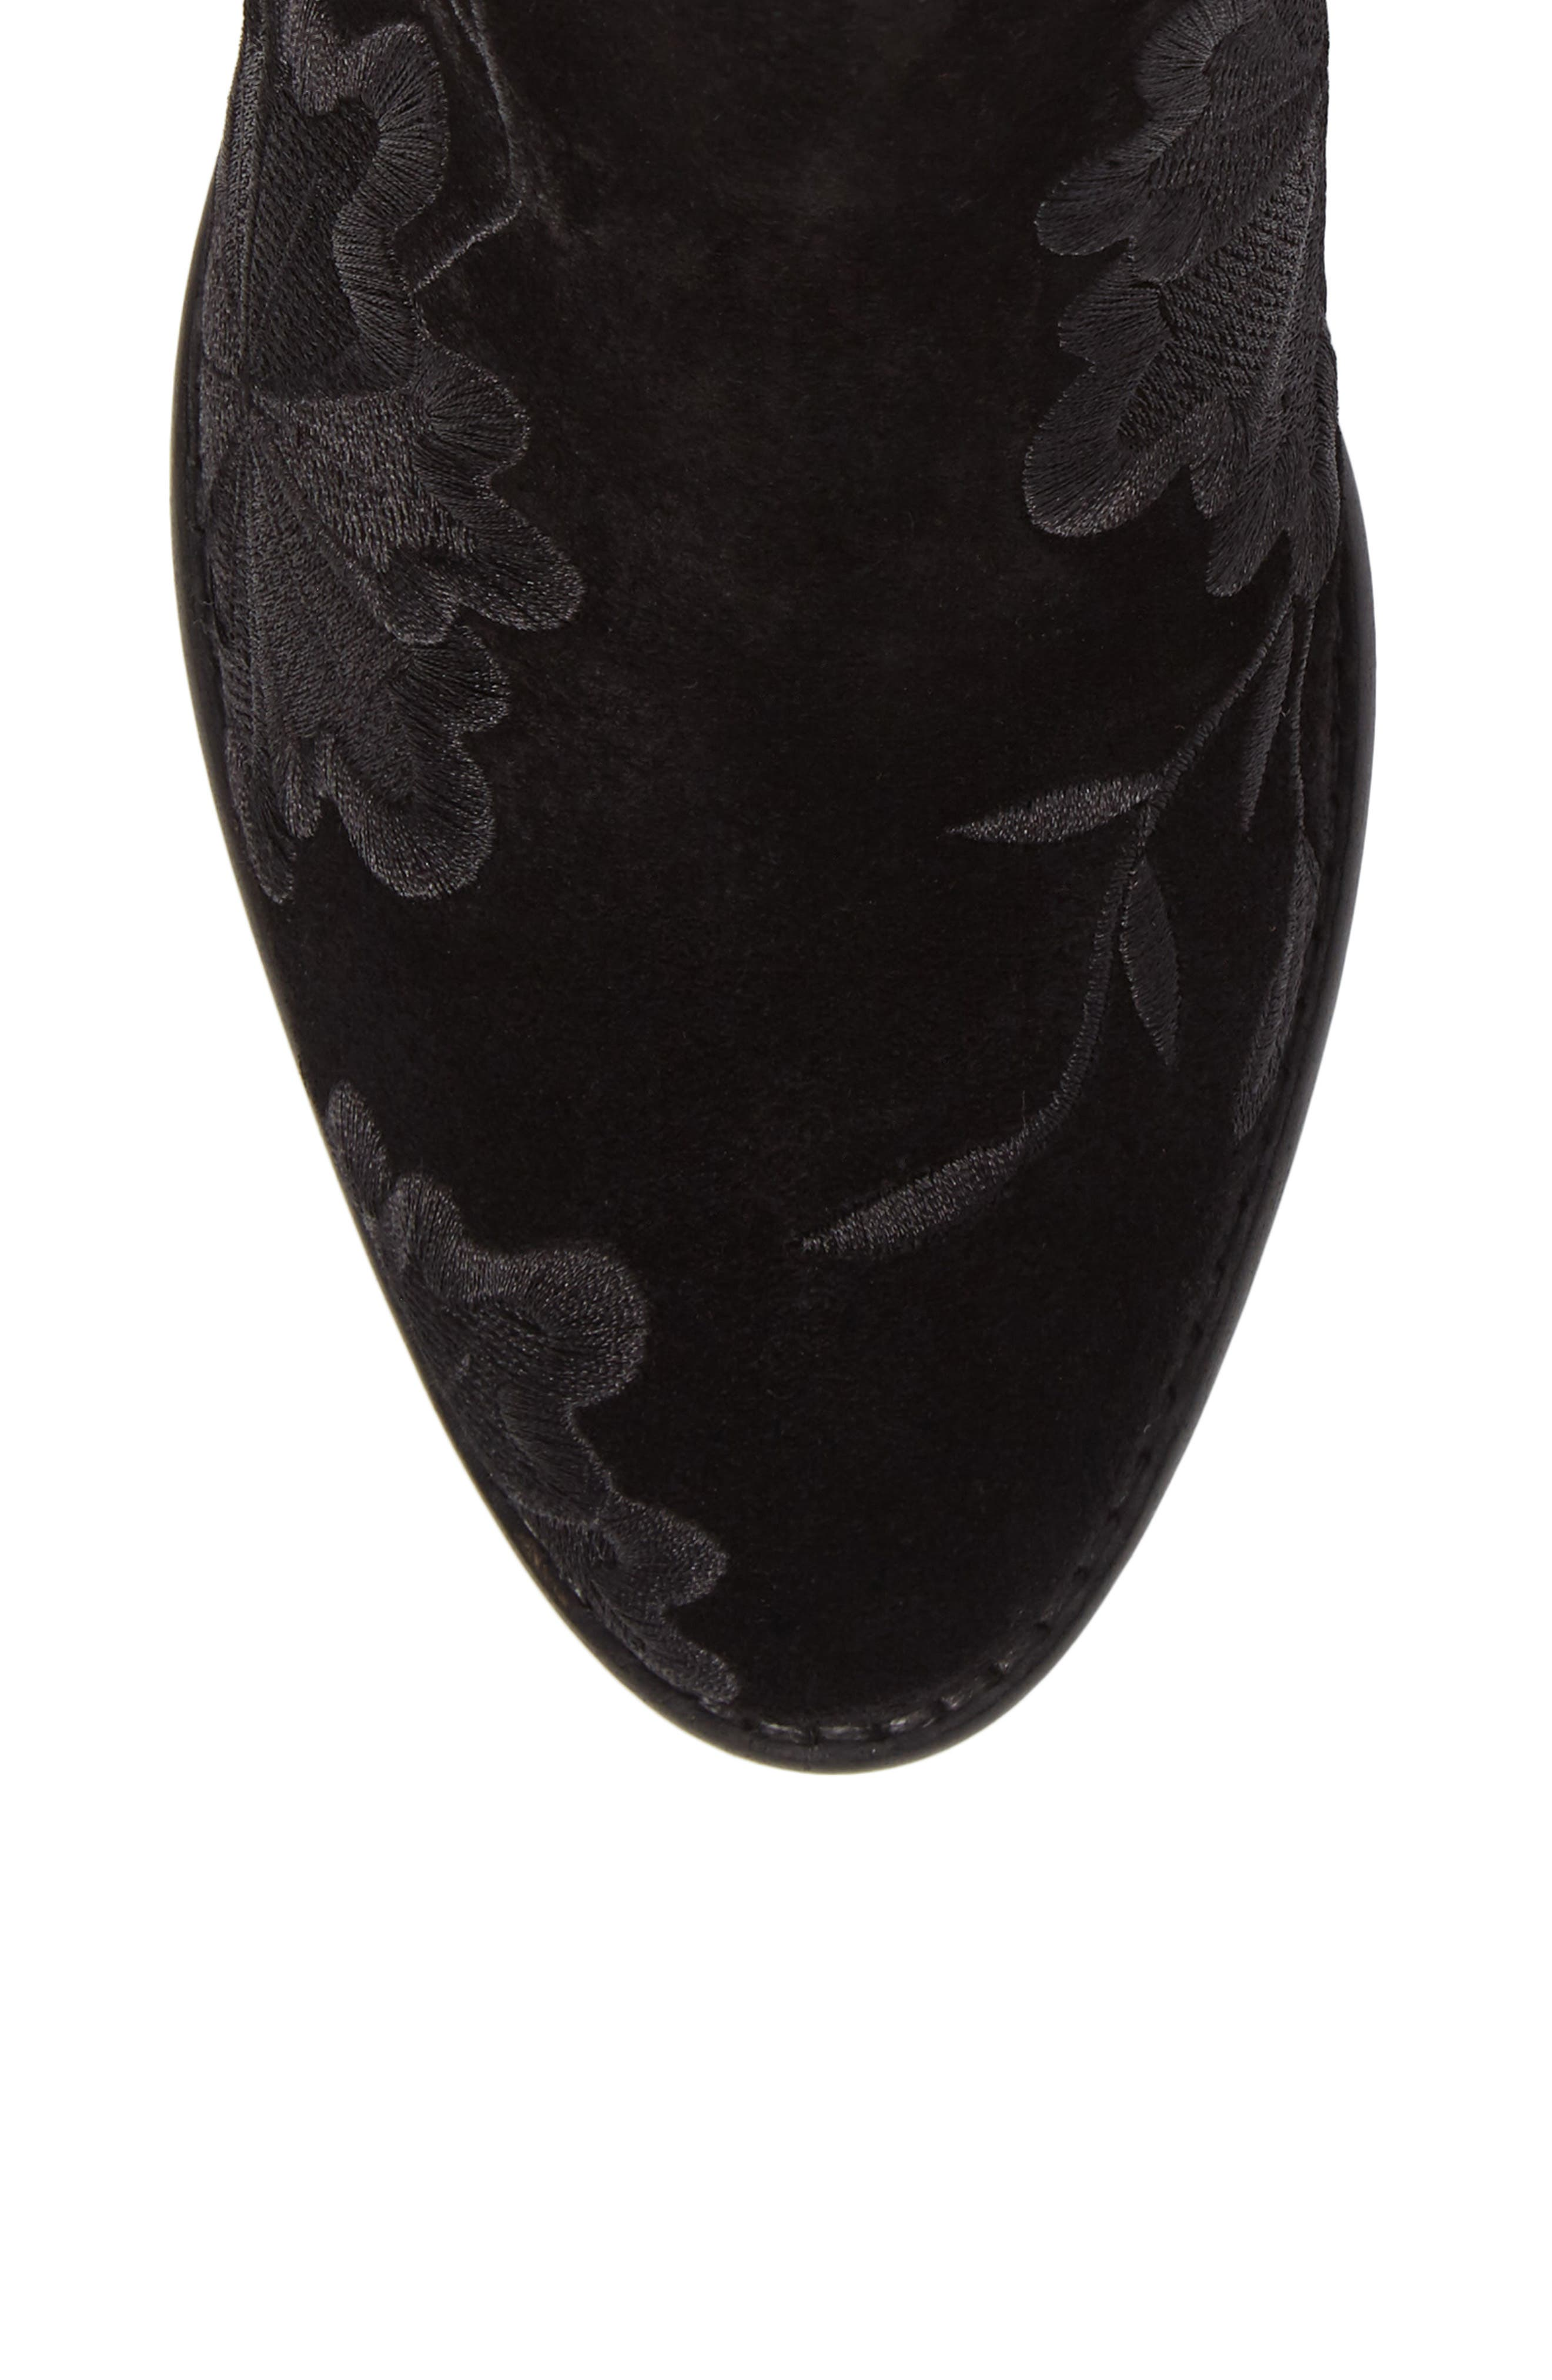 Lantern Embroidered Short Bootie,                             Alternate thumbnail 5, color,                             001